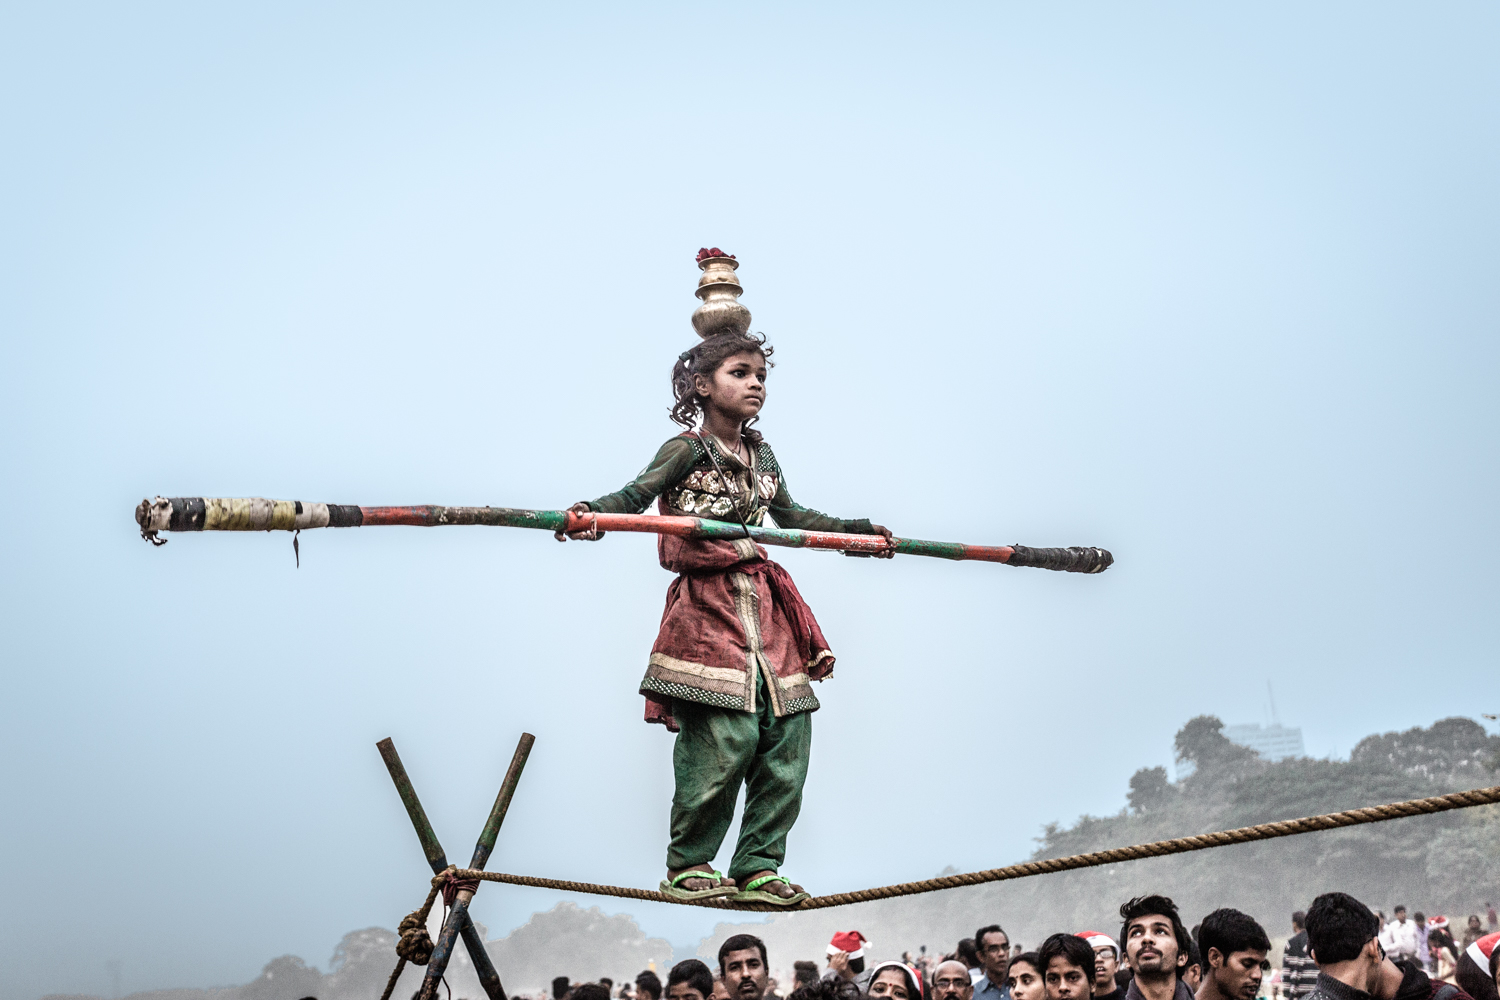 In the Maiden, a young girl performs acrobatic feats for alms.